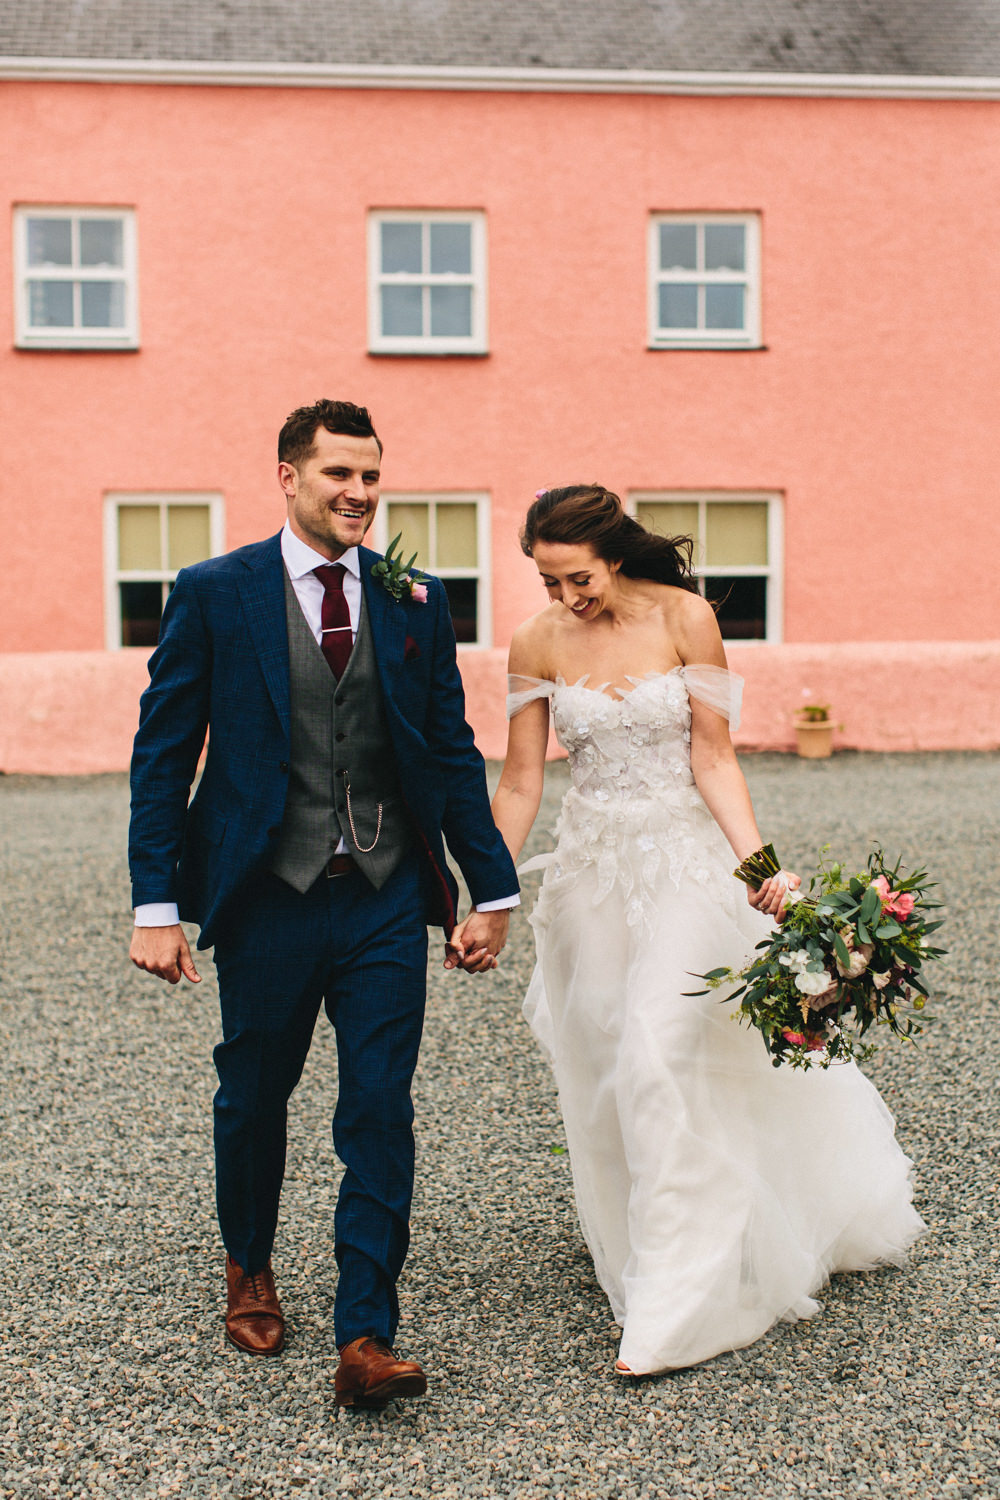 Dress Gown Bride Bridal Off Shoulder Bardot Tulle Floaty Mira Zwillinger Outbuildings Wedding Jessica O'Shaughnessy Photography